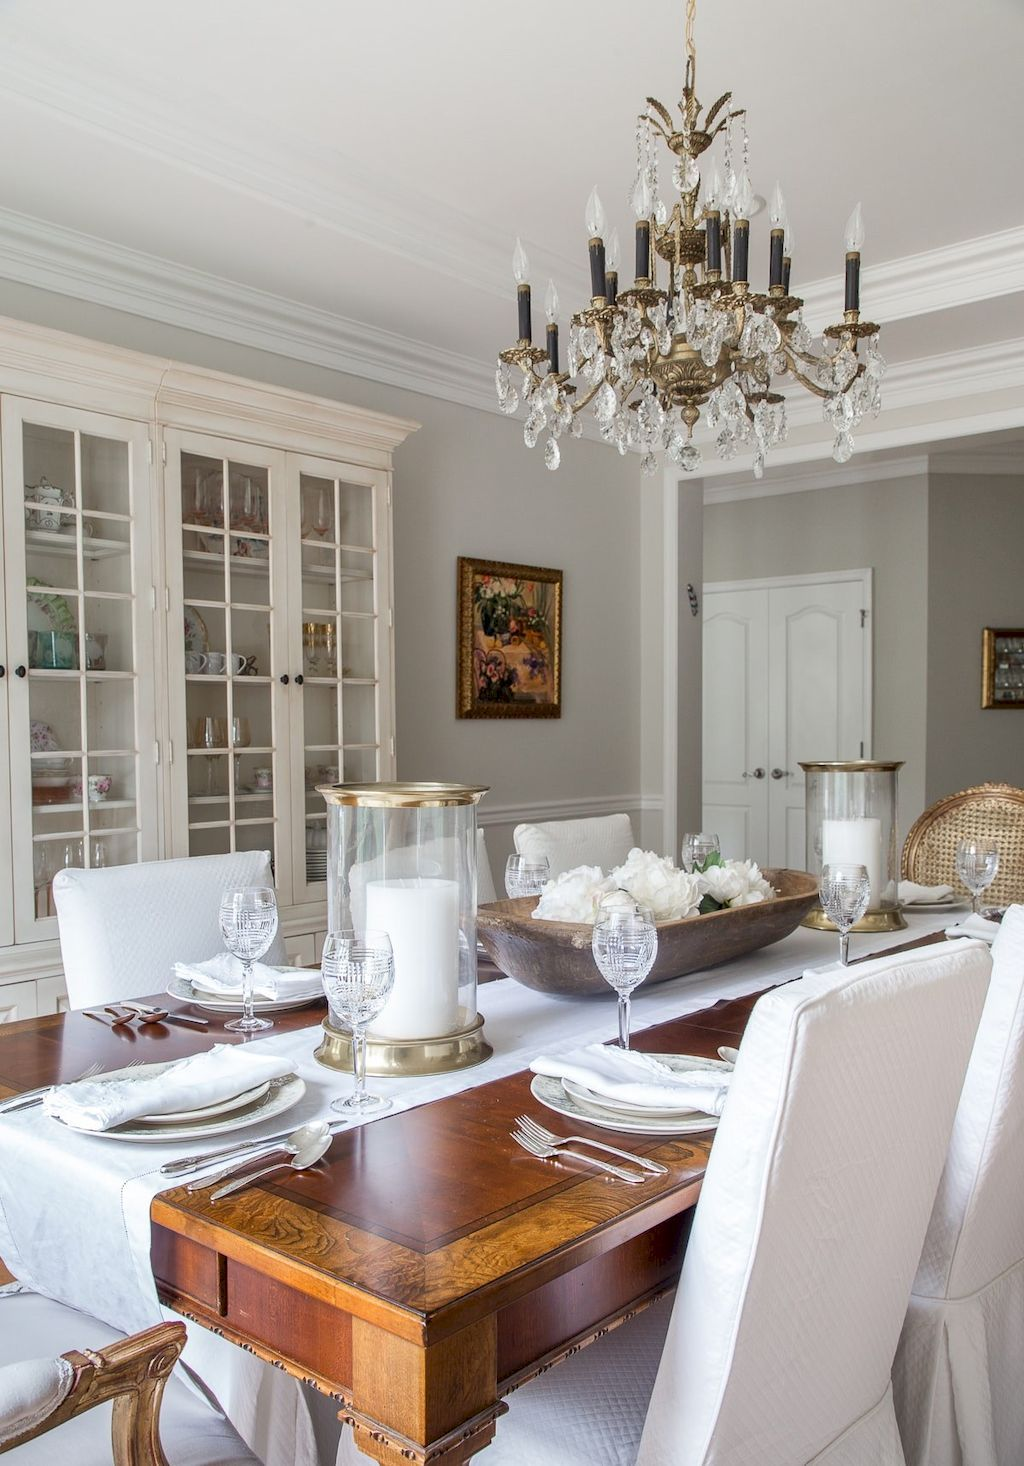 16 Gorgeous French Country Dining Room Decor Ideas  French